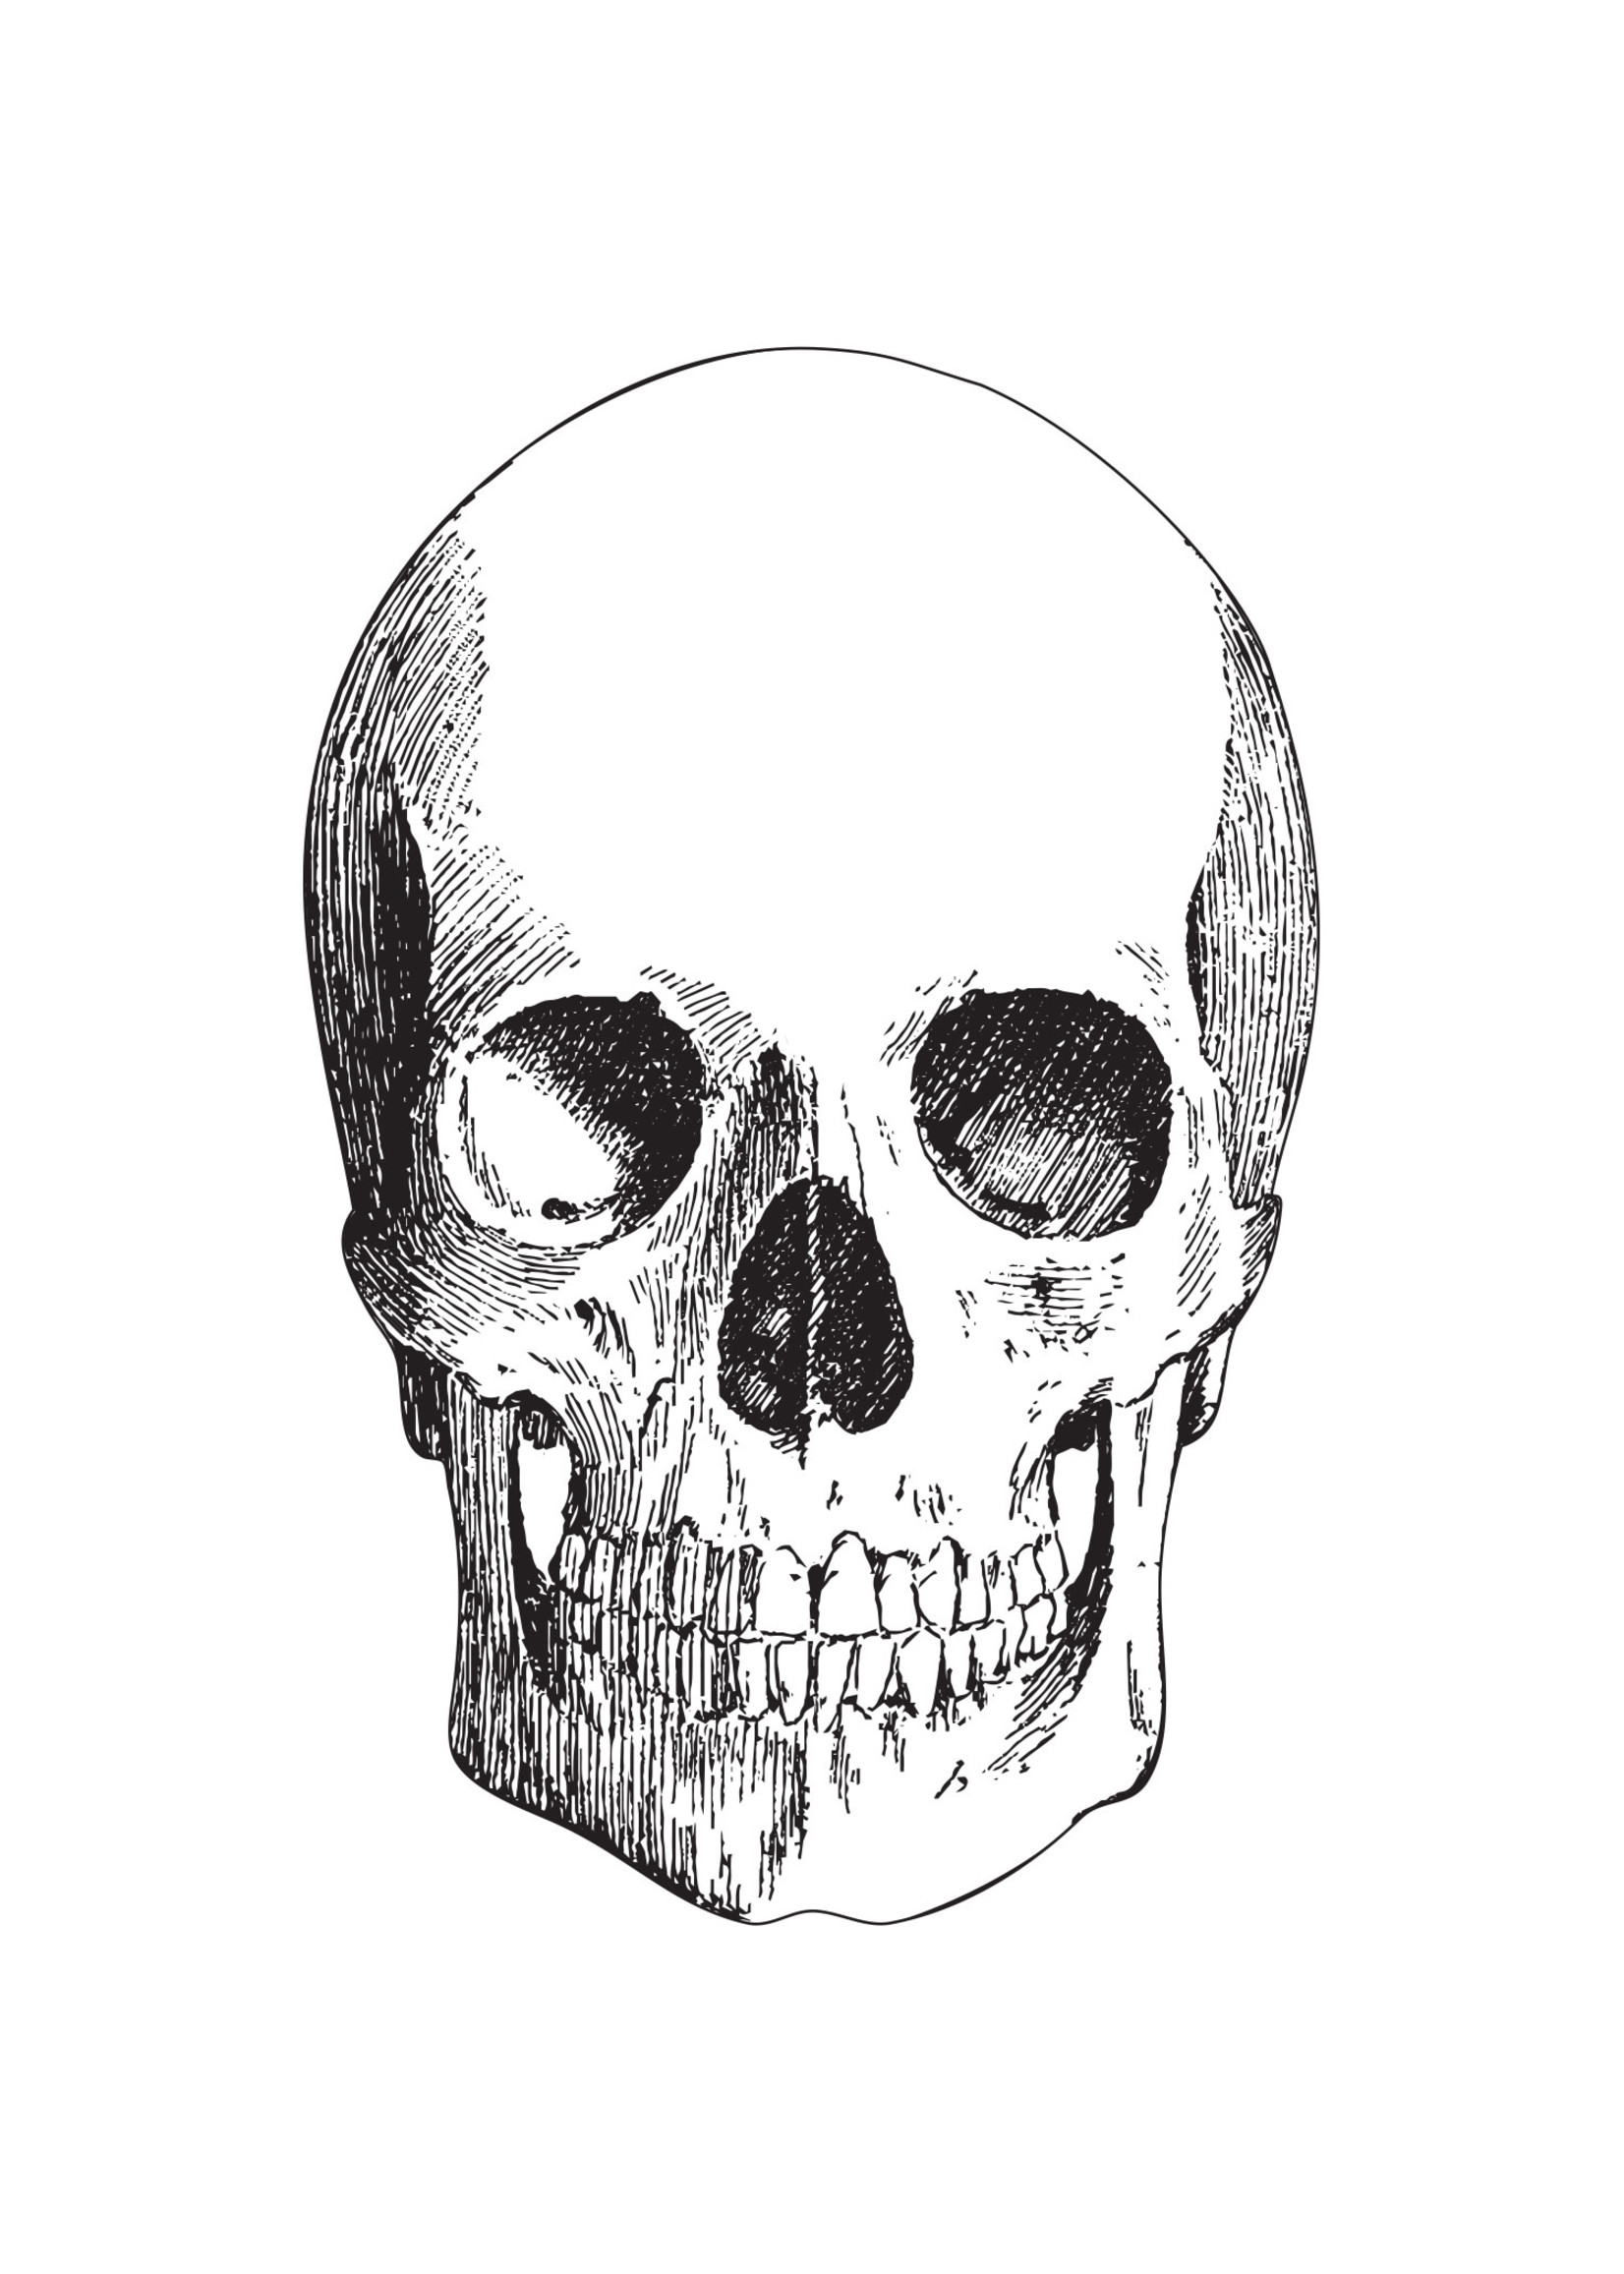 Hester & Cook Paper Placemats - Skull (12 sheets)